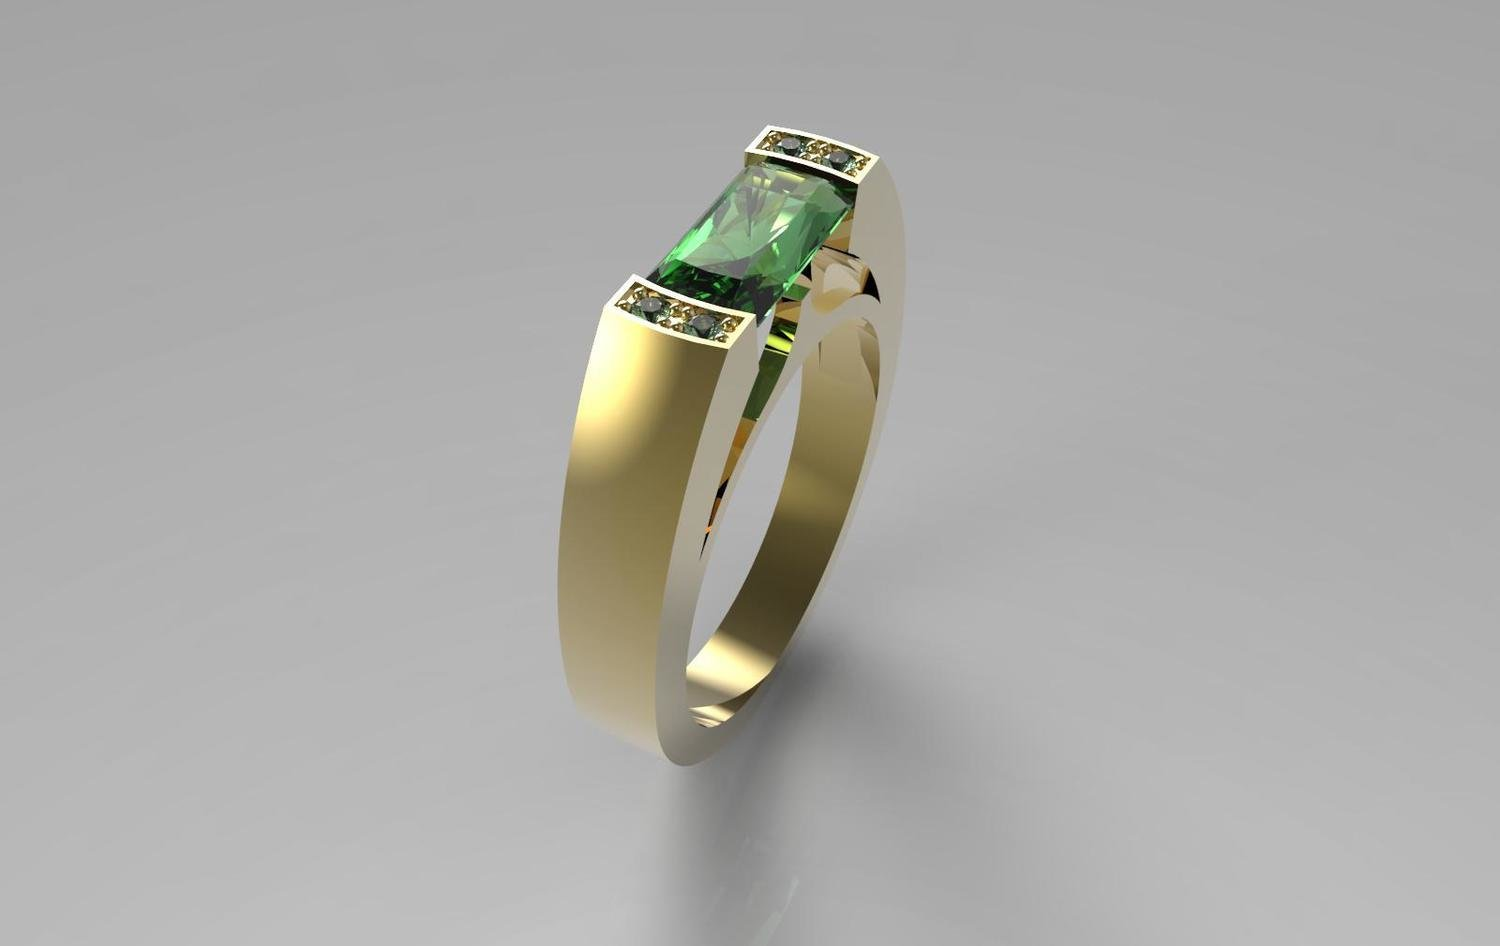 3D CAD Model of Men's Ring with Emerald and Diamonds